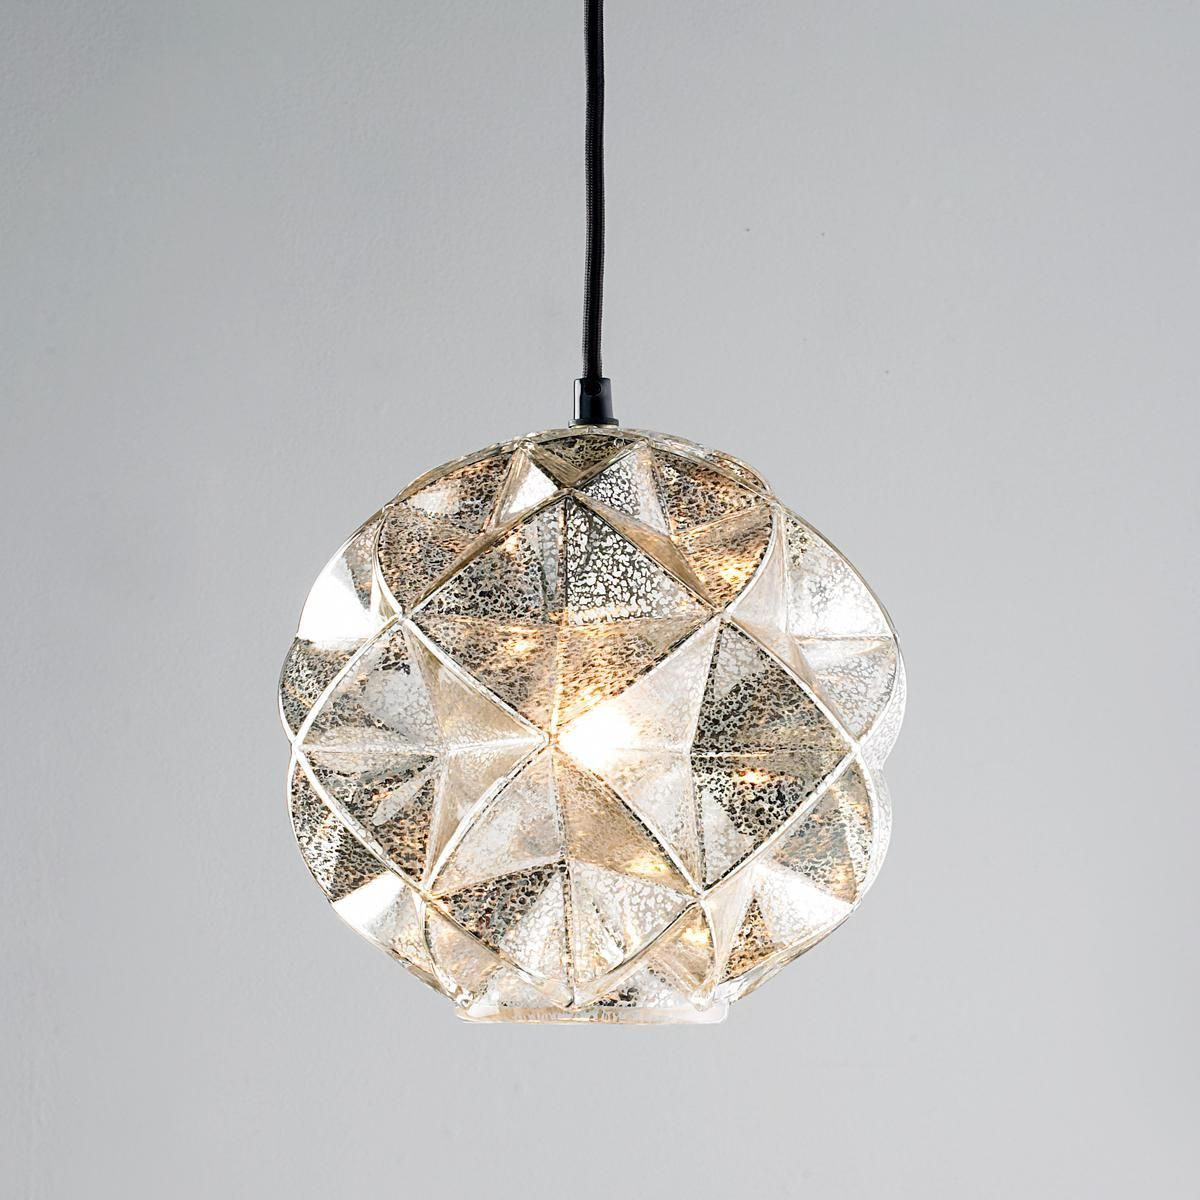 Mercury Glass Pendant Light Fixture Interesting Mercury Glass Geodesic Dome Pendant Light  Mercury Glass Pendant Decorating Design